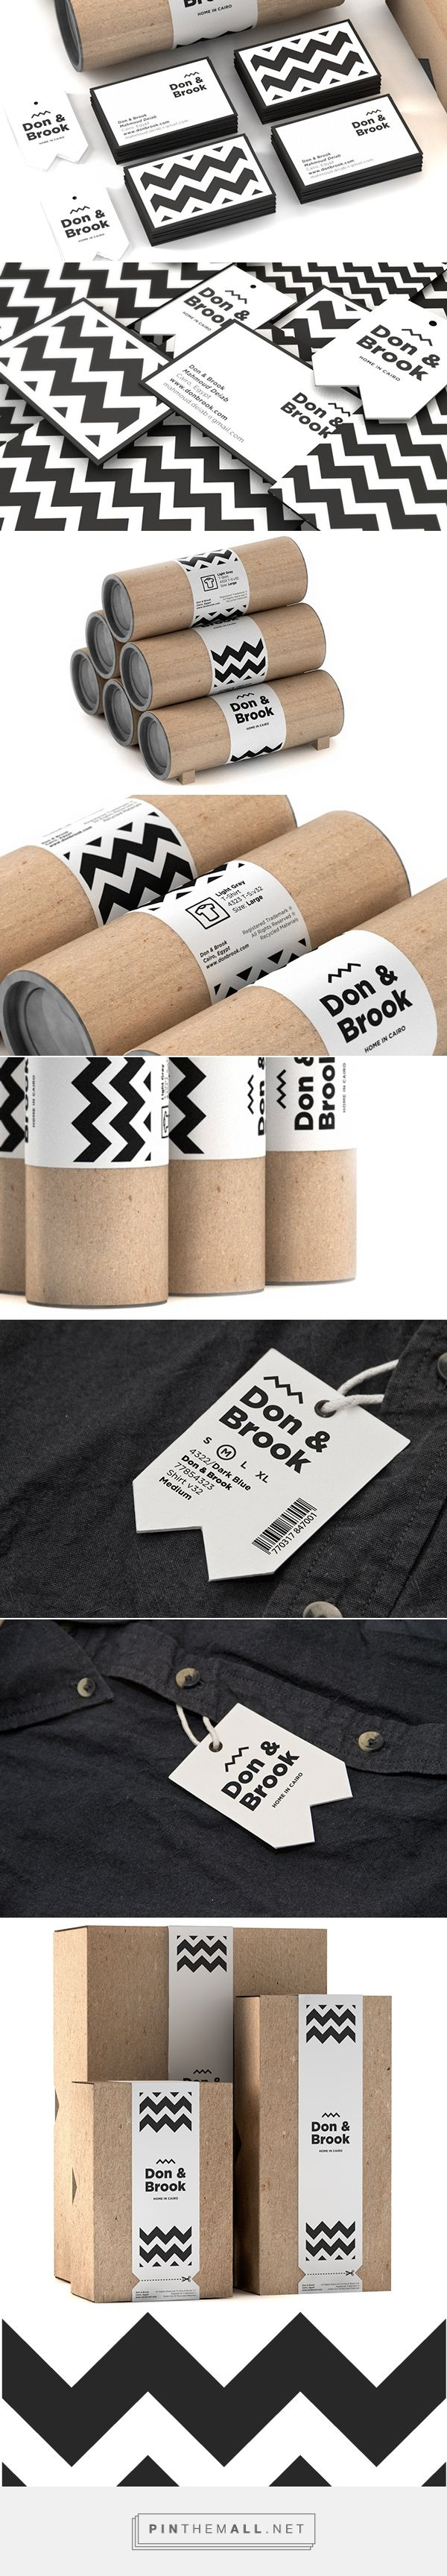 Don & Brook  is a Cairo based menswear and lifestyle brand / clothing packaging